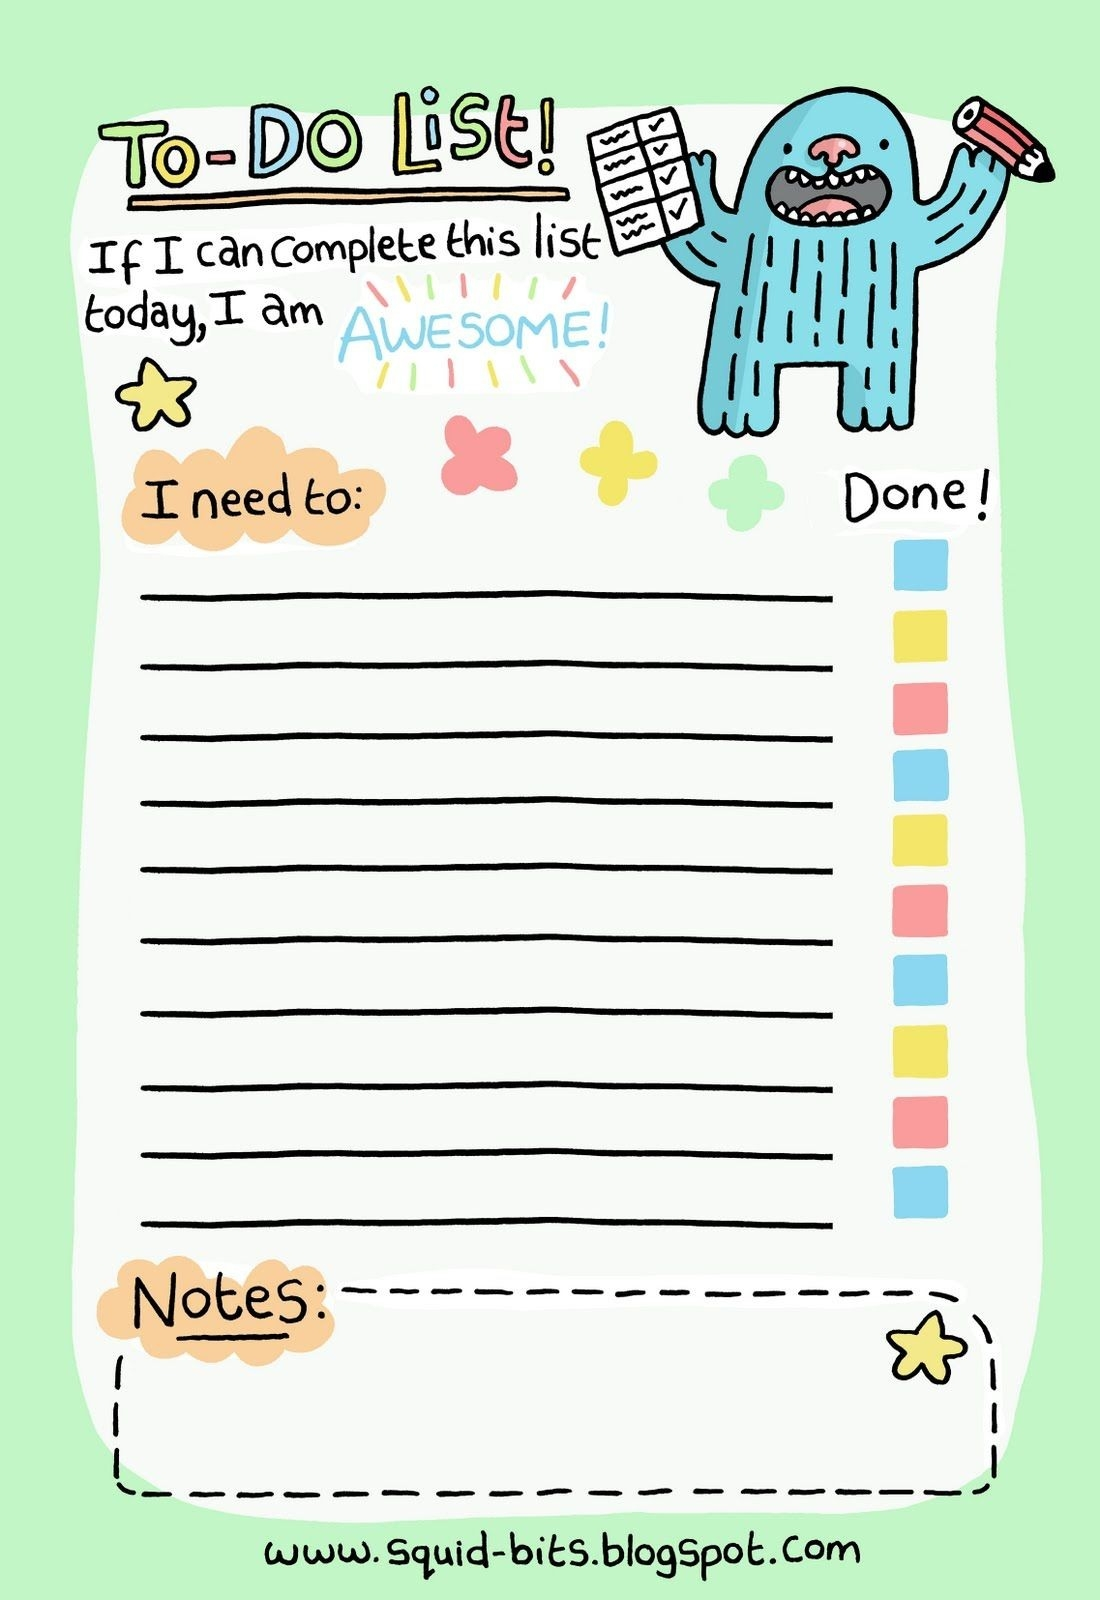 I Have A Huge List Of Things To Do, I Always Get A Crappy Scrap Of pertaining to Cute To Do List Ideas 21451